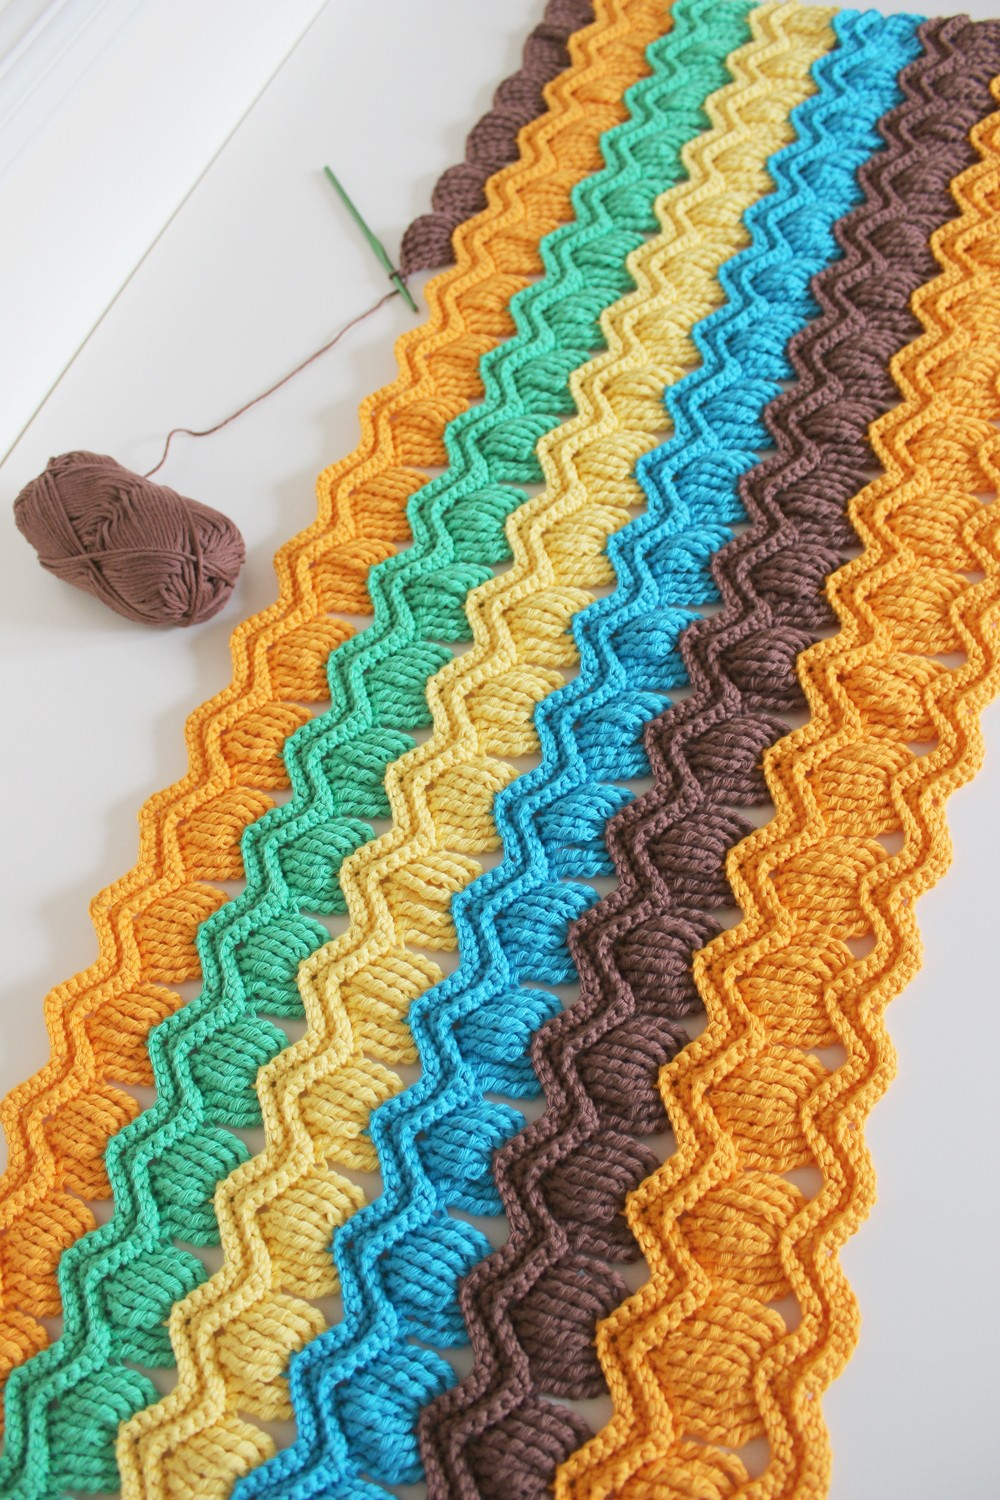 Free Pattern] Crochet Vintage Fan Ripple Stitch